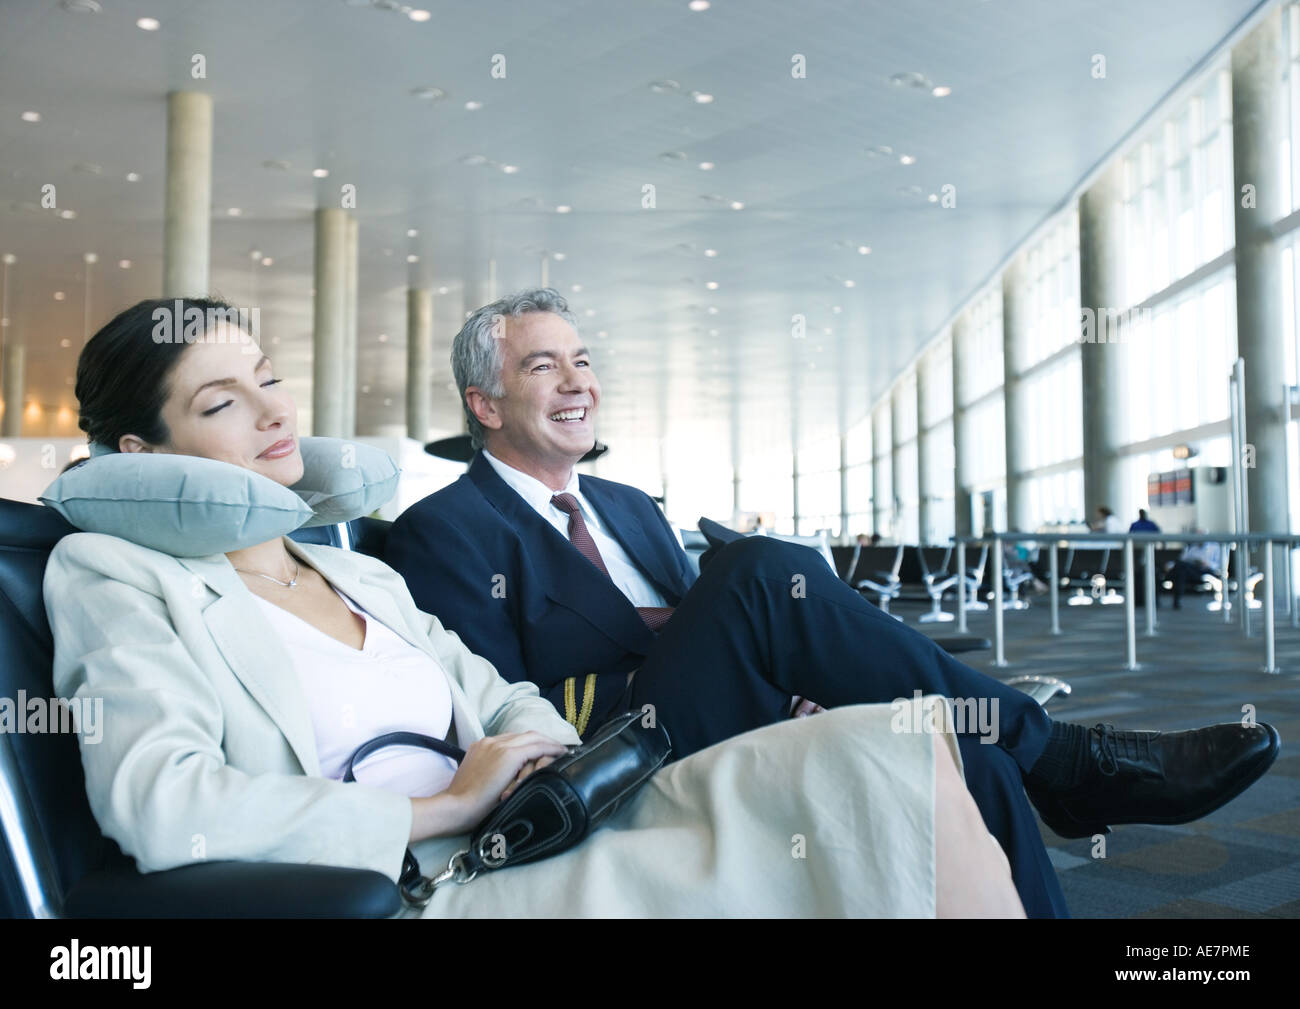 Business travelers sitting in airport lounge, woman napping with neck pillow next to smiling man Stock Photo